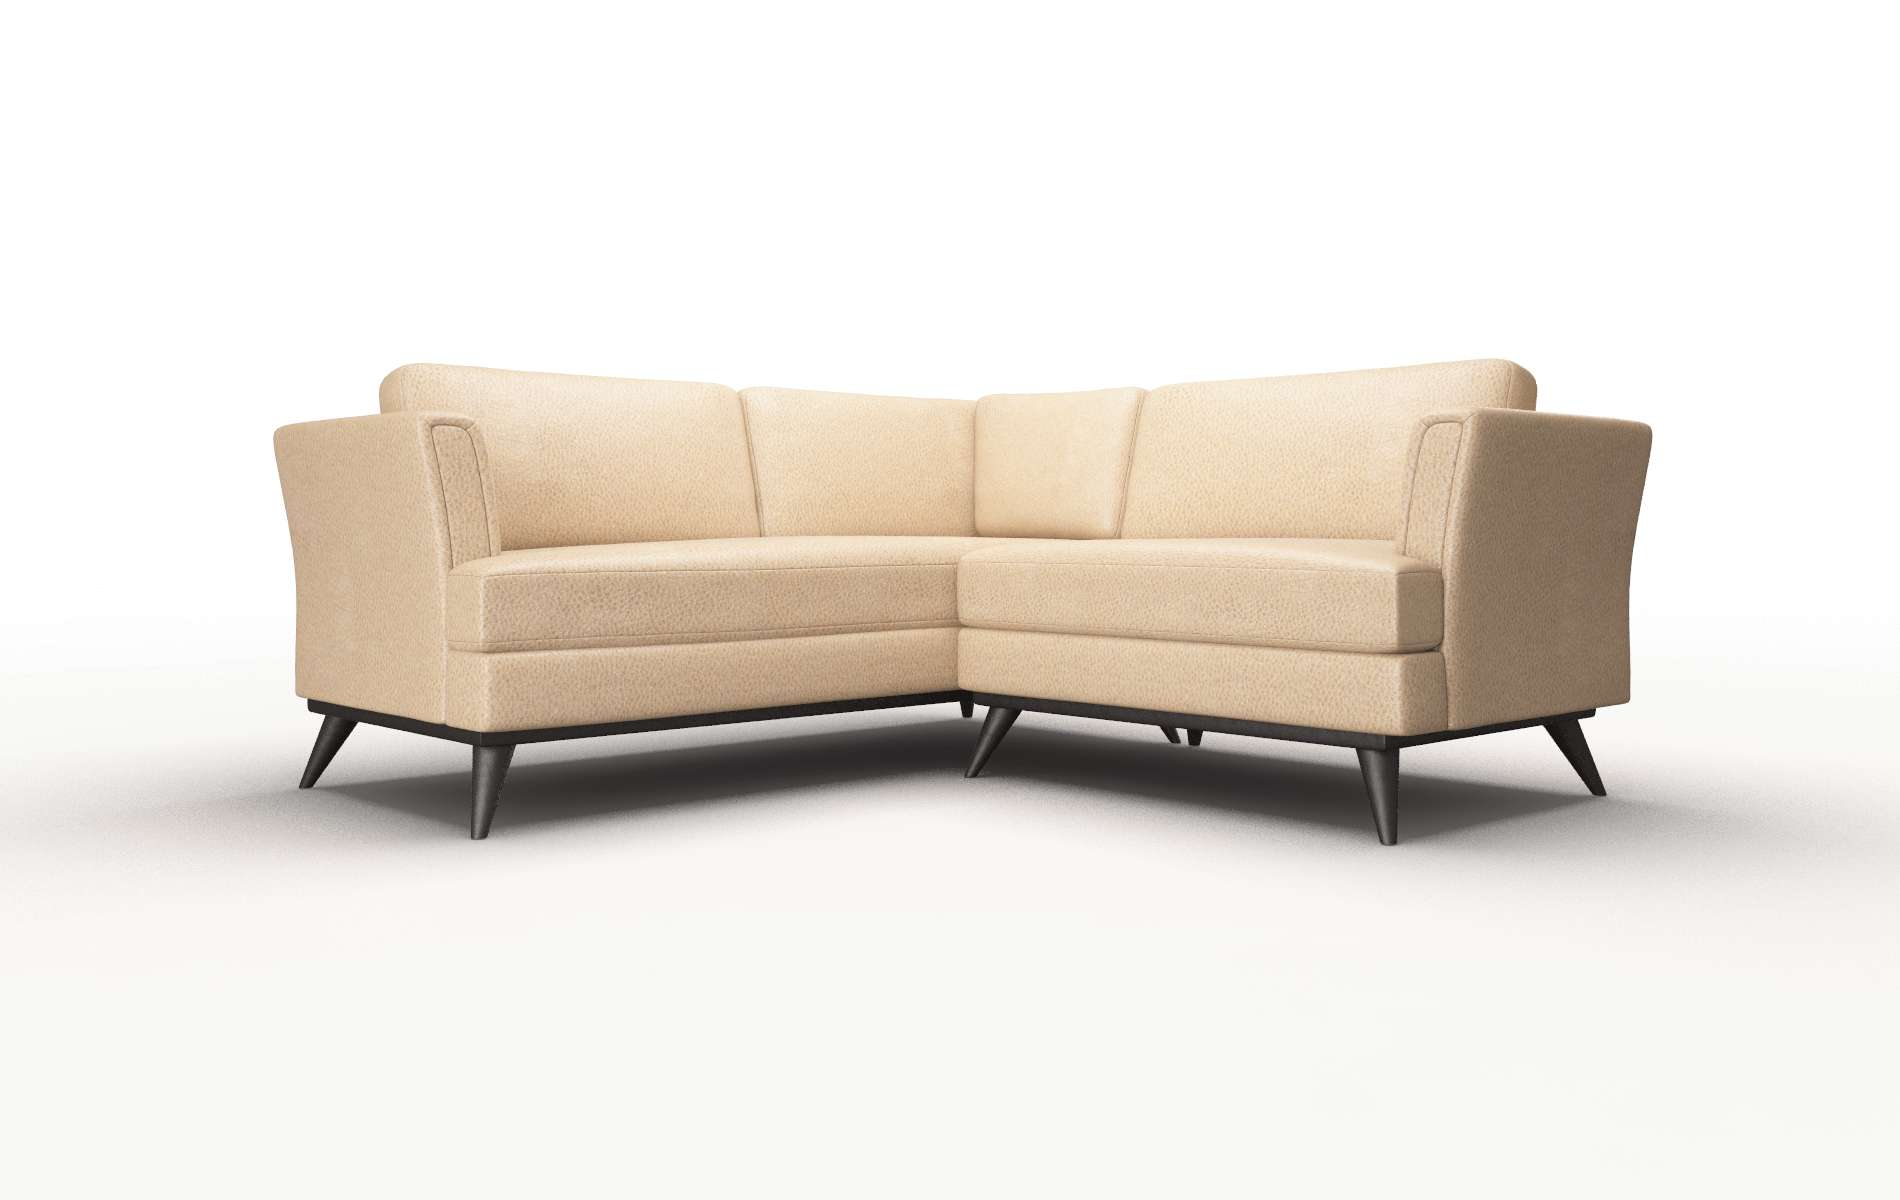 Antalya Ford Dune Sectional espresso legs 1